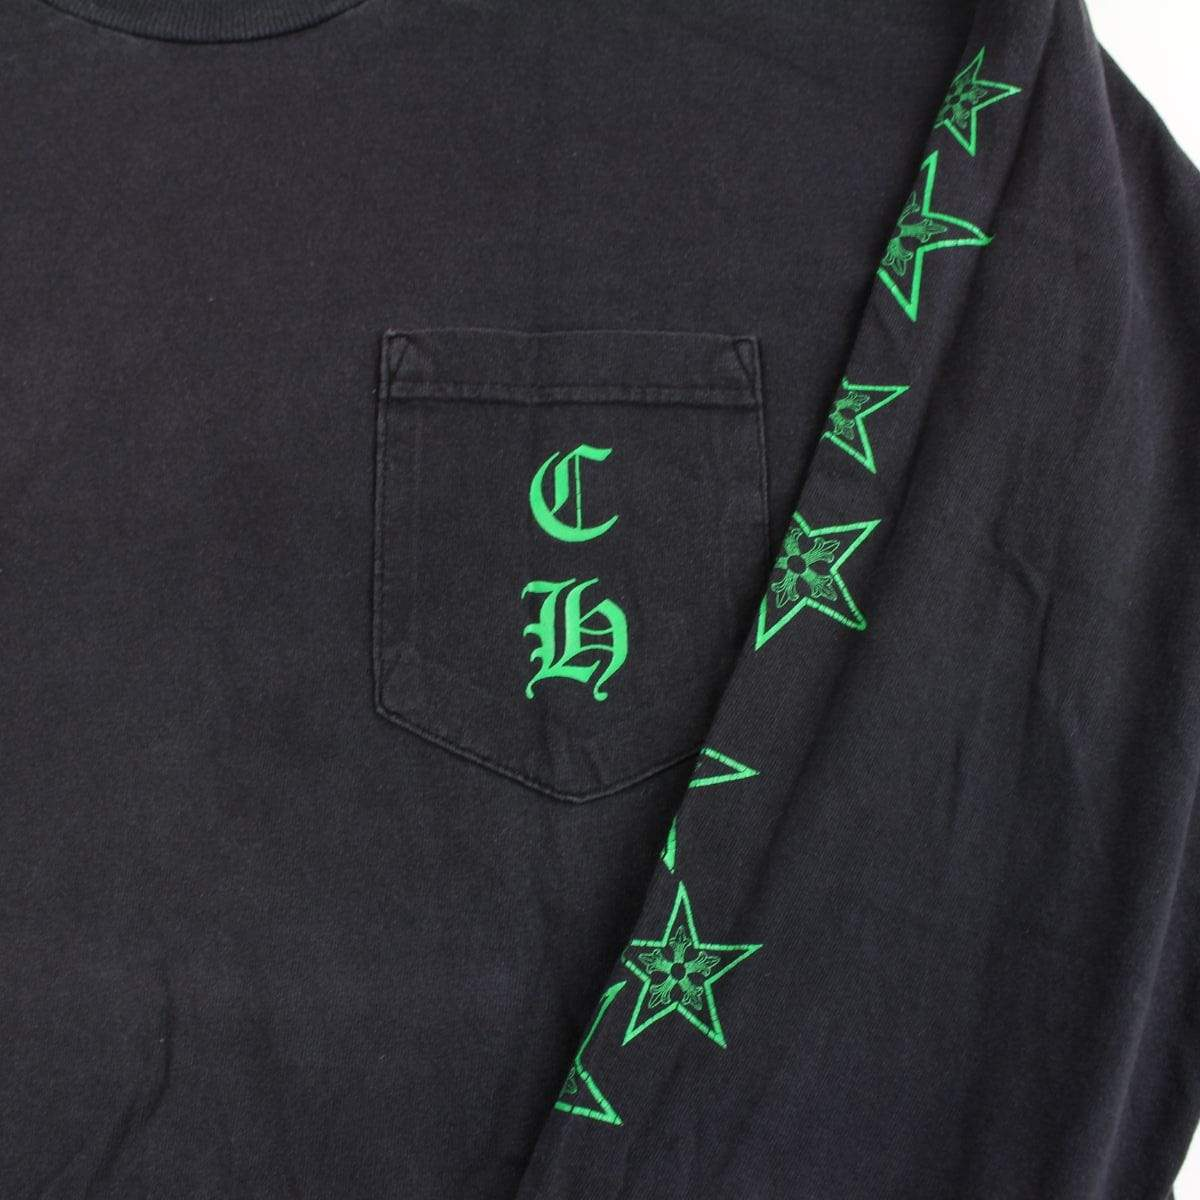 chrome hearts green cross stars ls black 90's - SaruGeneral